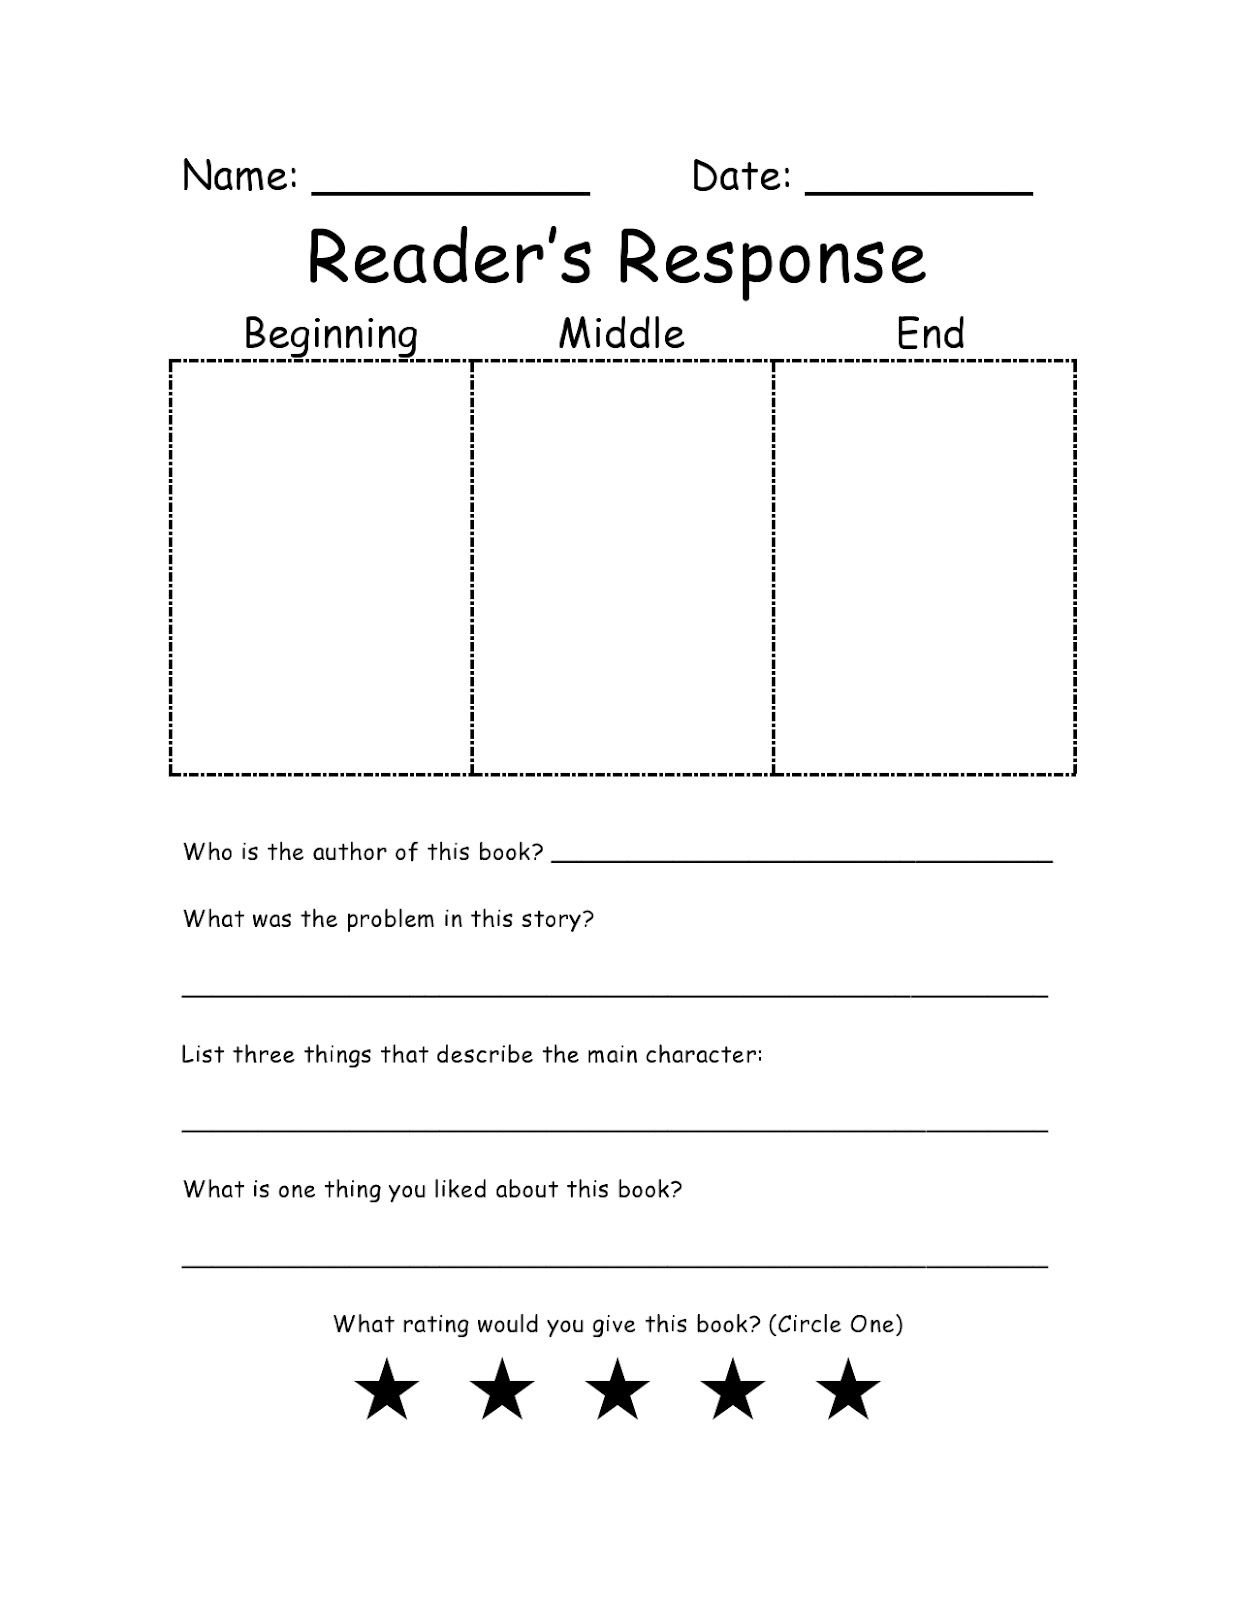 hight resolution of Beginning Middle And End Graphic Organizer Worksheet Examples   Reading  response